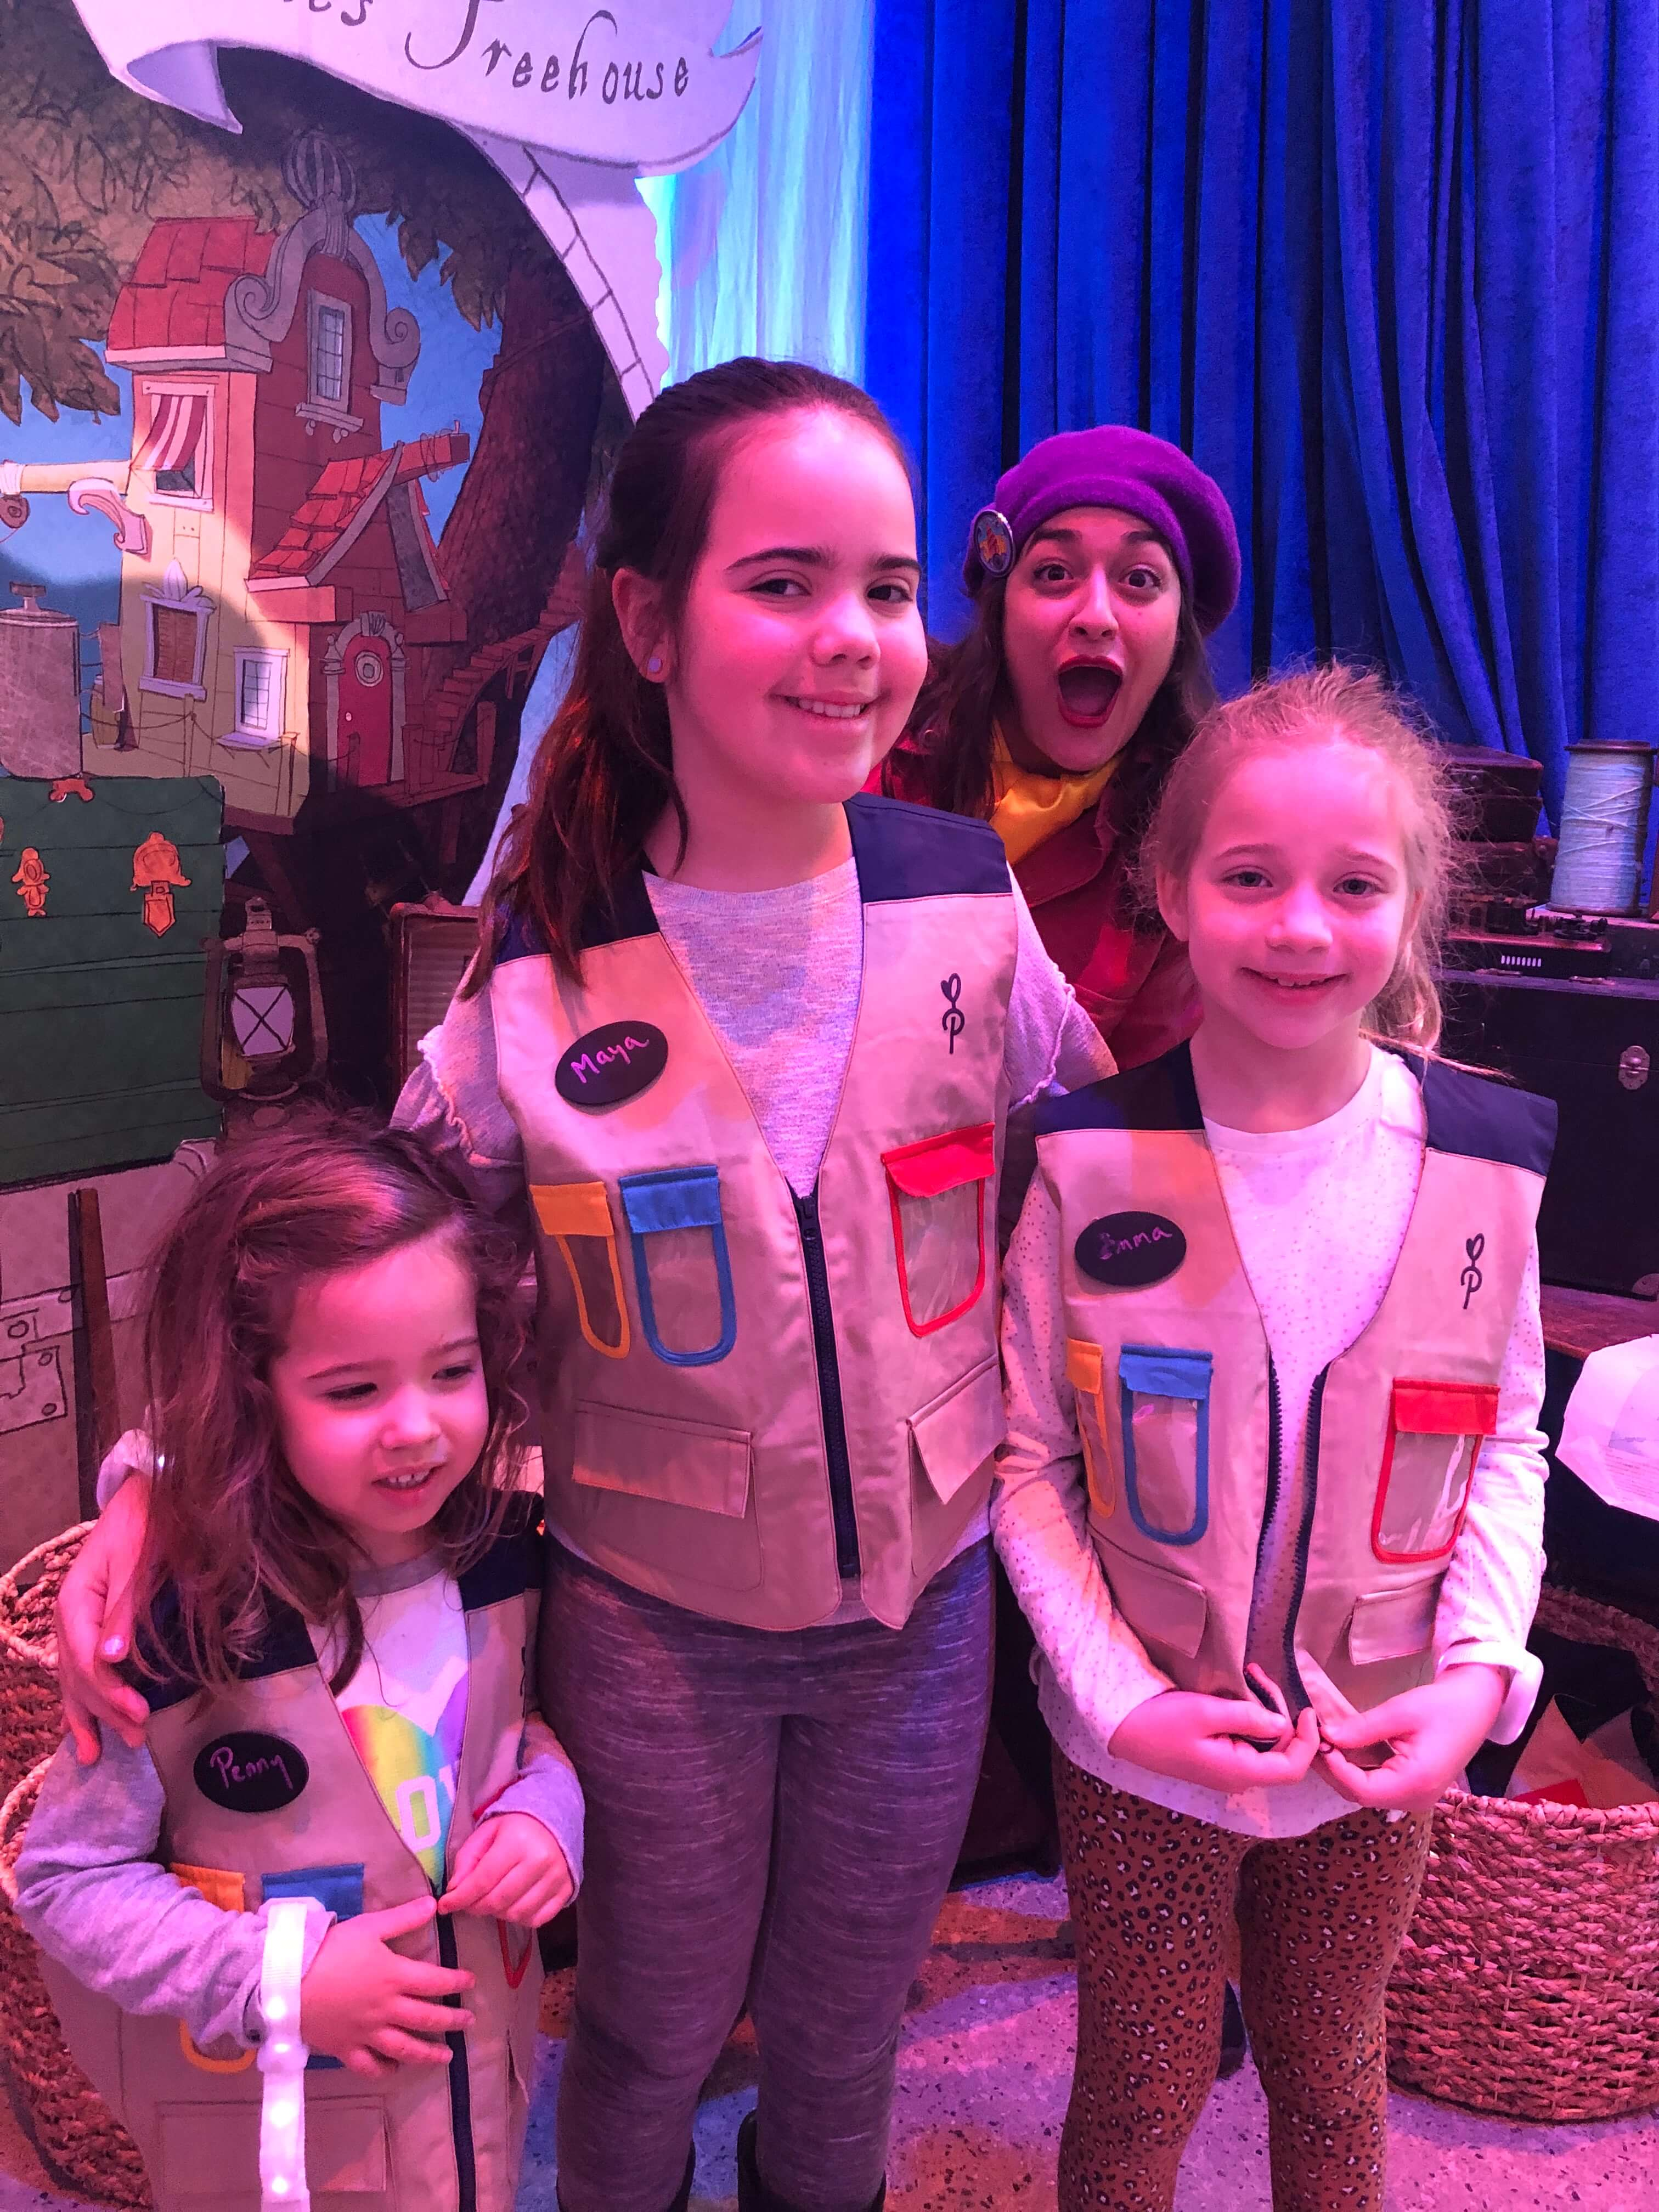 Pip's Island, an Immersive Theatrical Experience for Kids & Families Sparks Joy, Imagination and Wonder